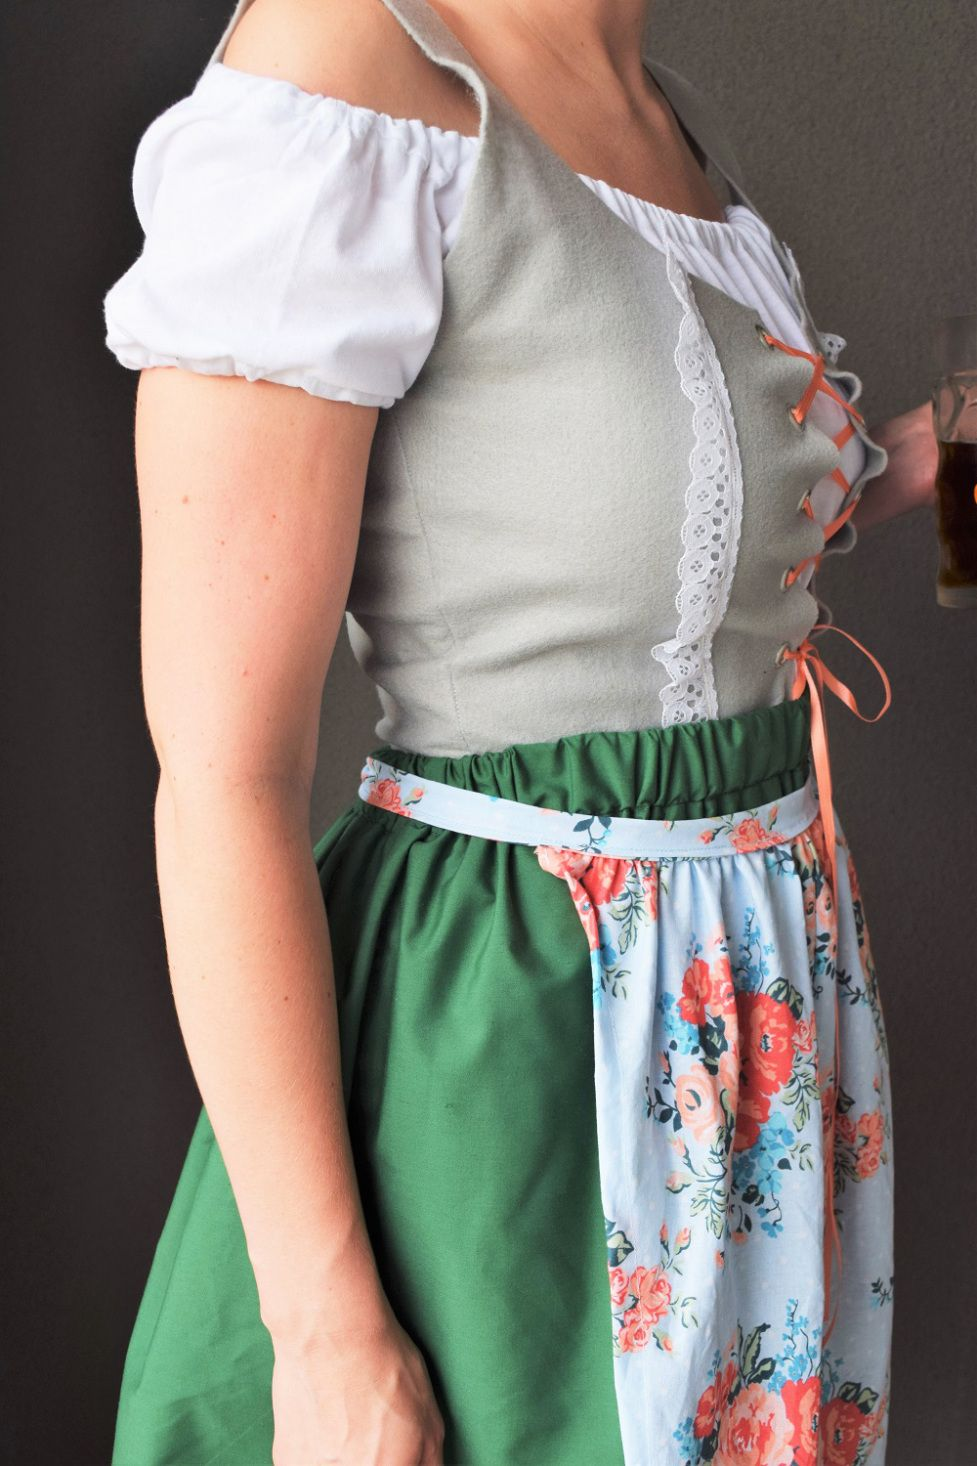 48925a04c85ff DIY Instructions for Dirndl Oktoberfest outfit! Instructions/patterns for  the vest, shirt, skirt, and apron